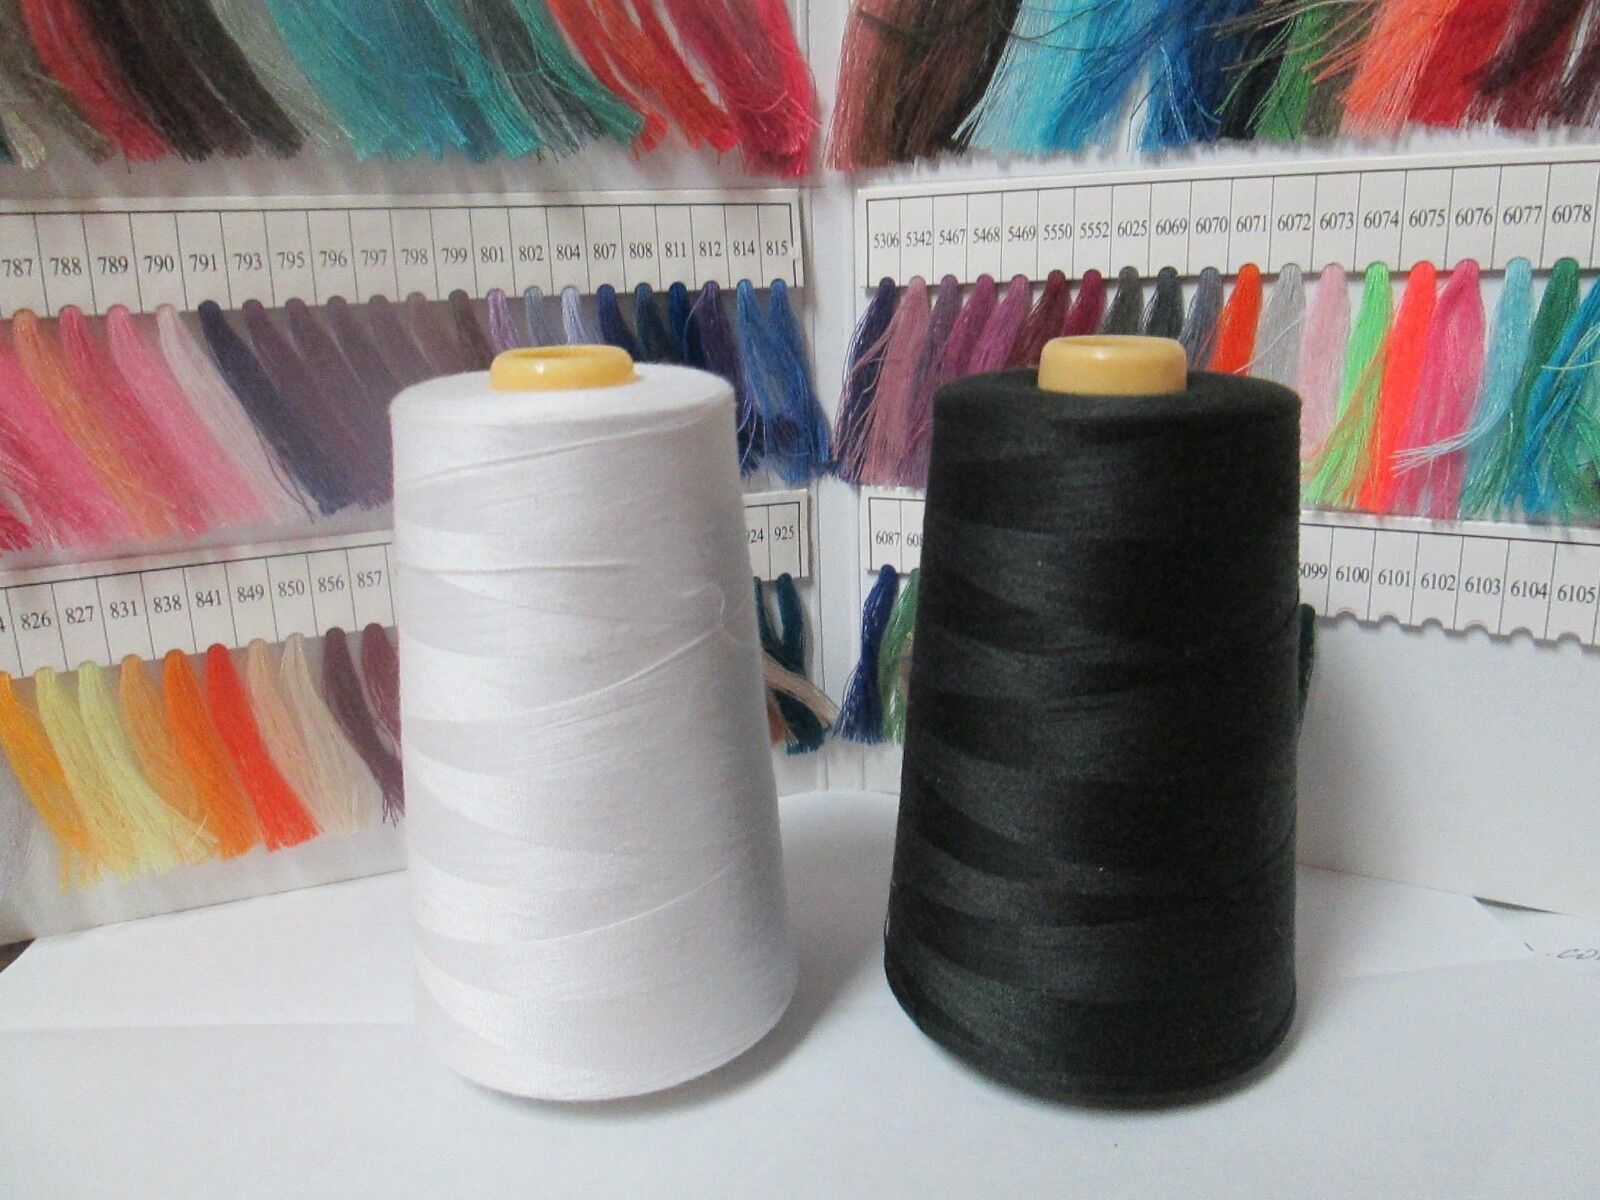 6000 Yds. Serger Sewing Machine Thread 100% Spun Polyester - All Purpose Thread